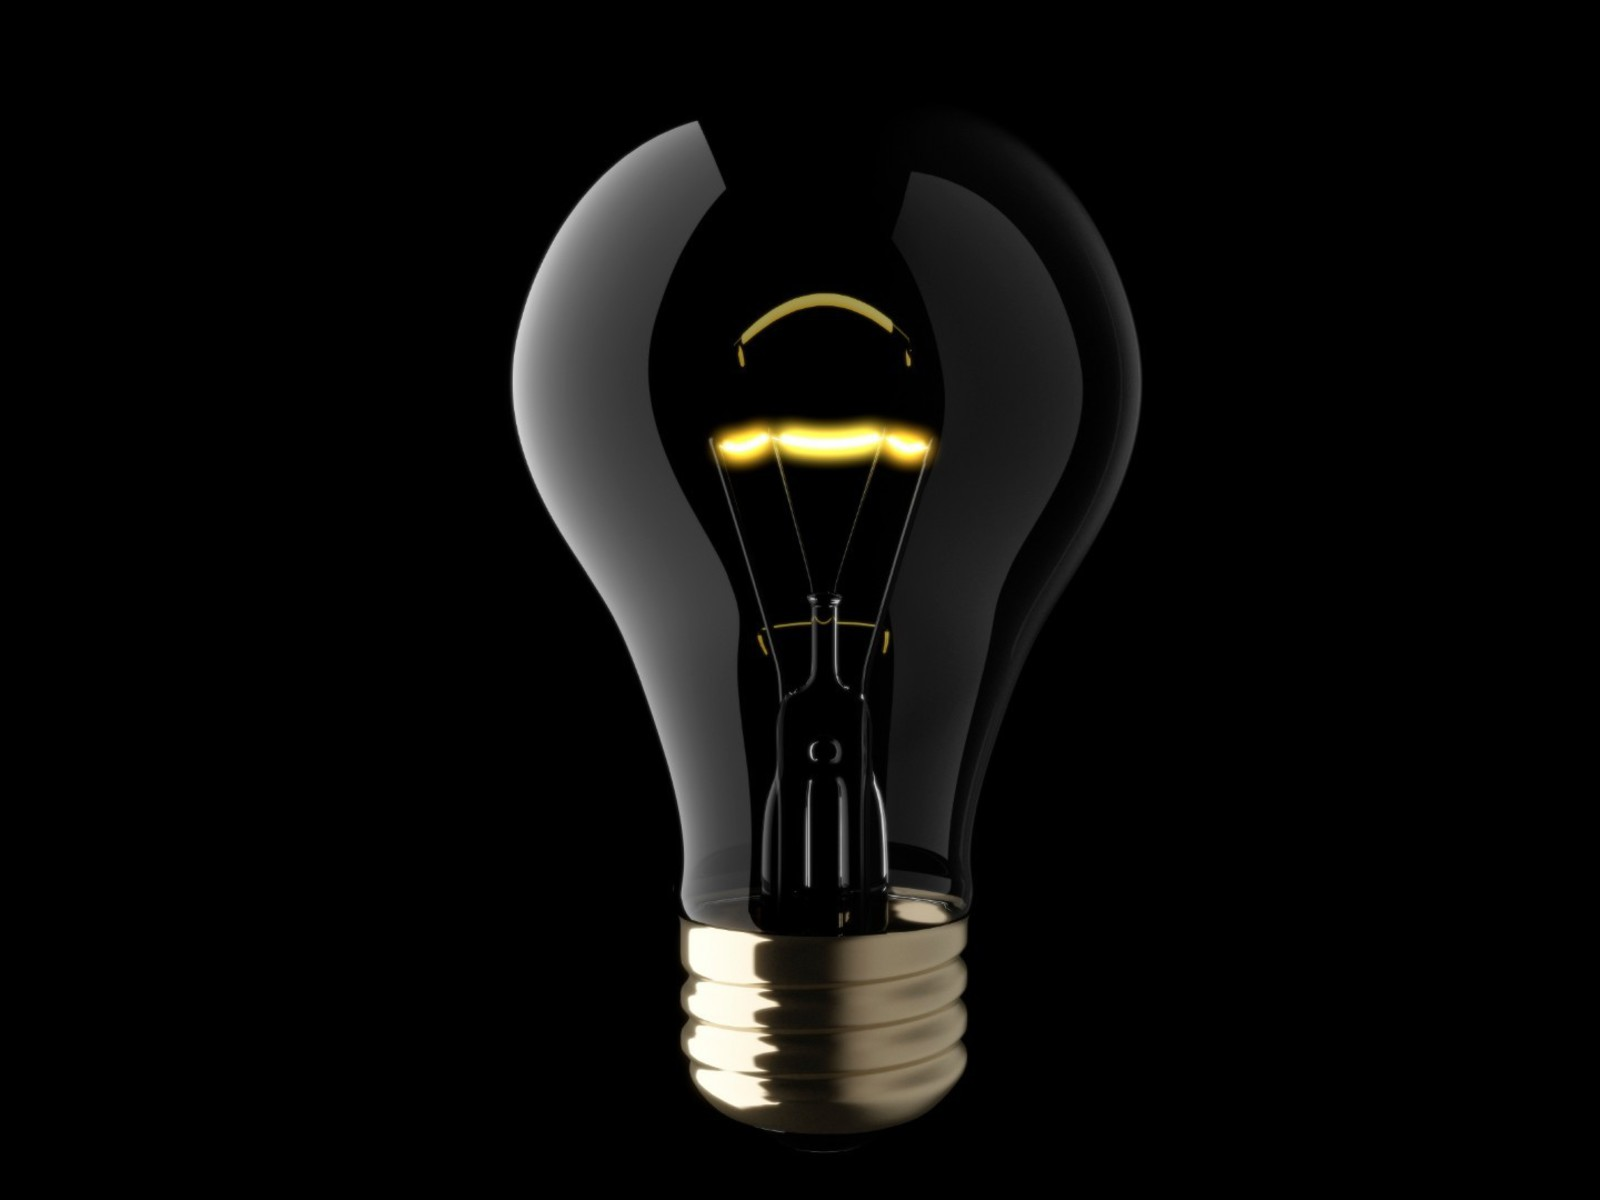 Cgi black background light bulbs minimalistic objects wallpaper